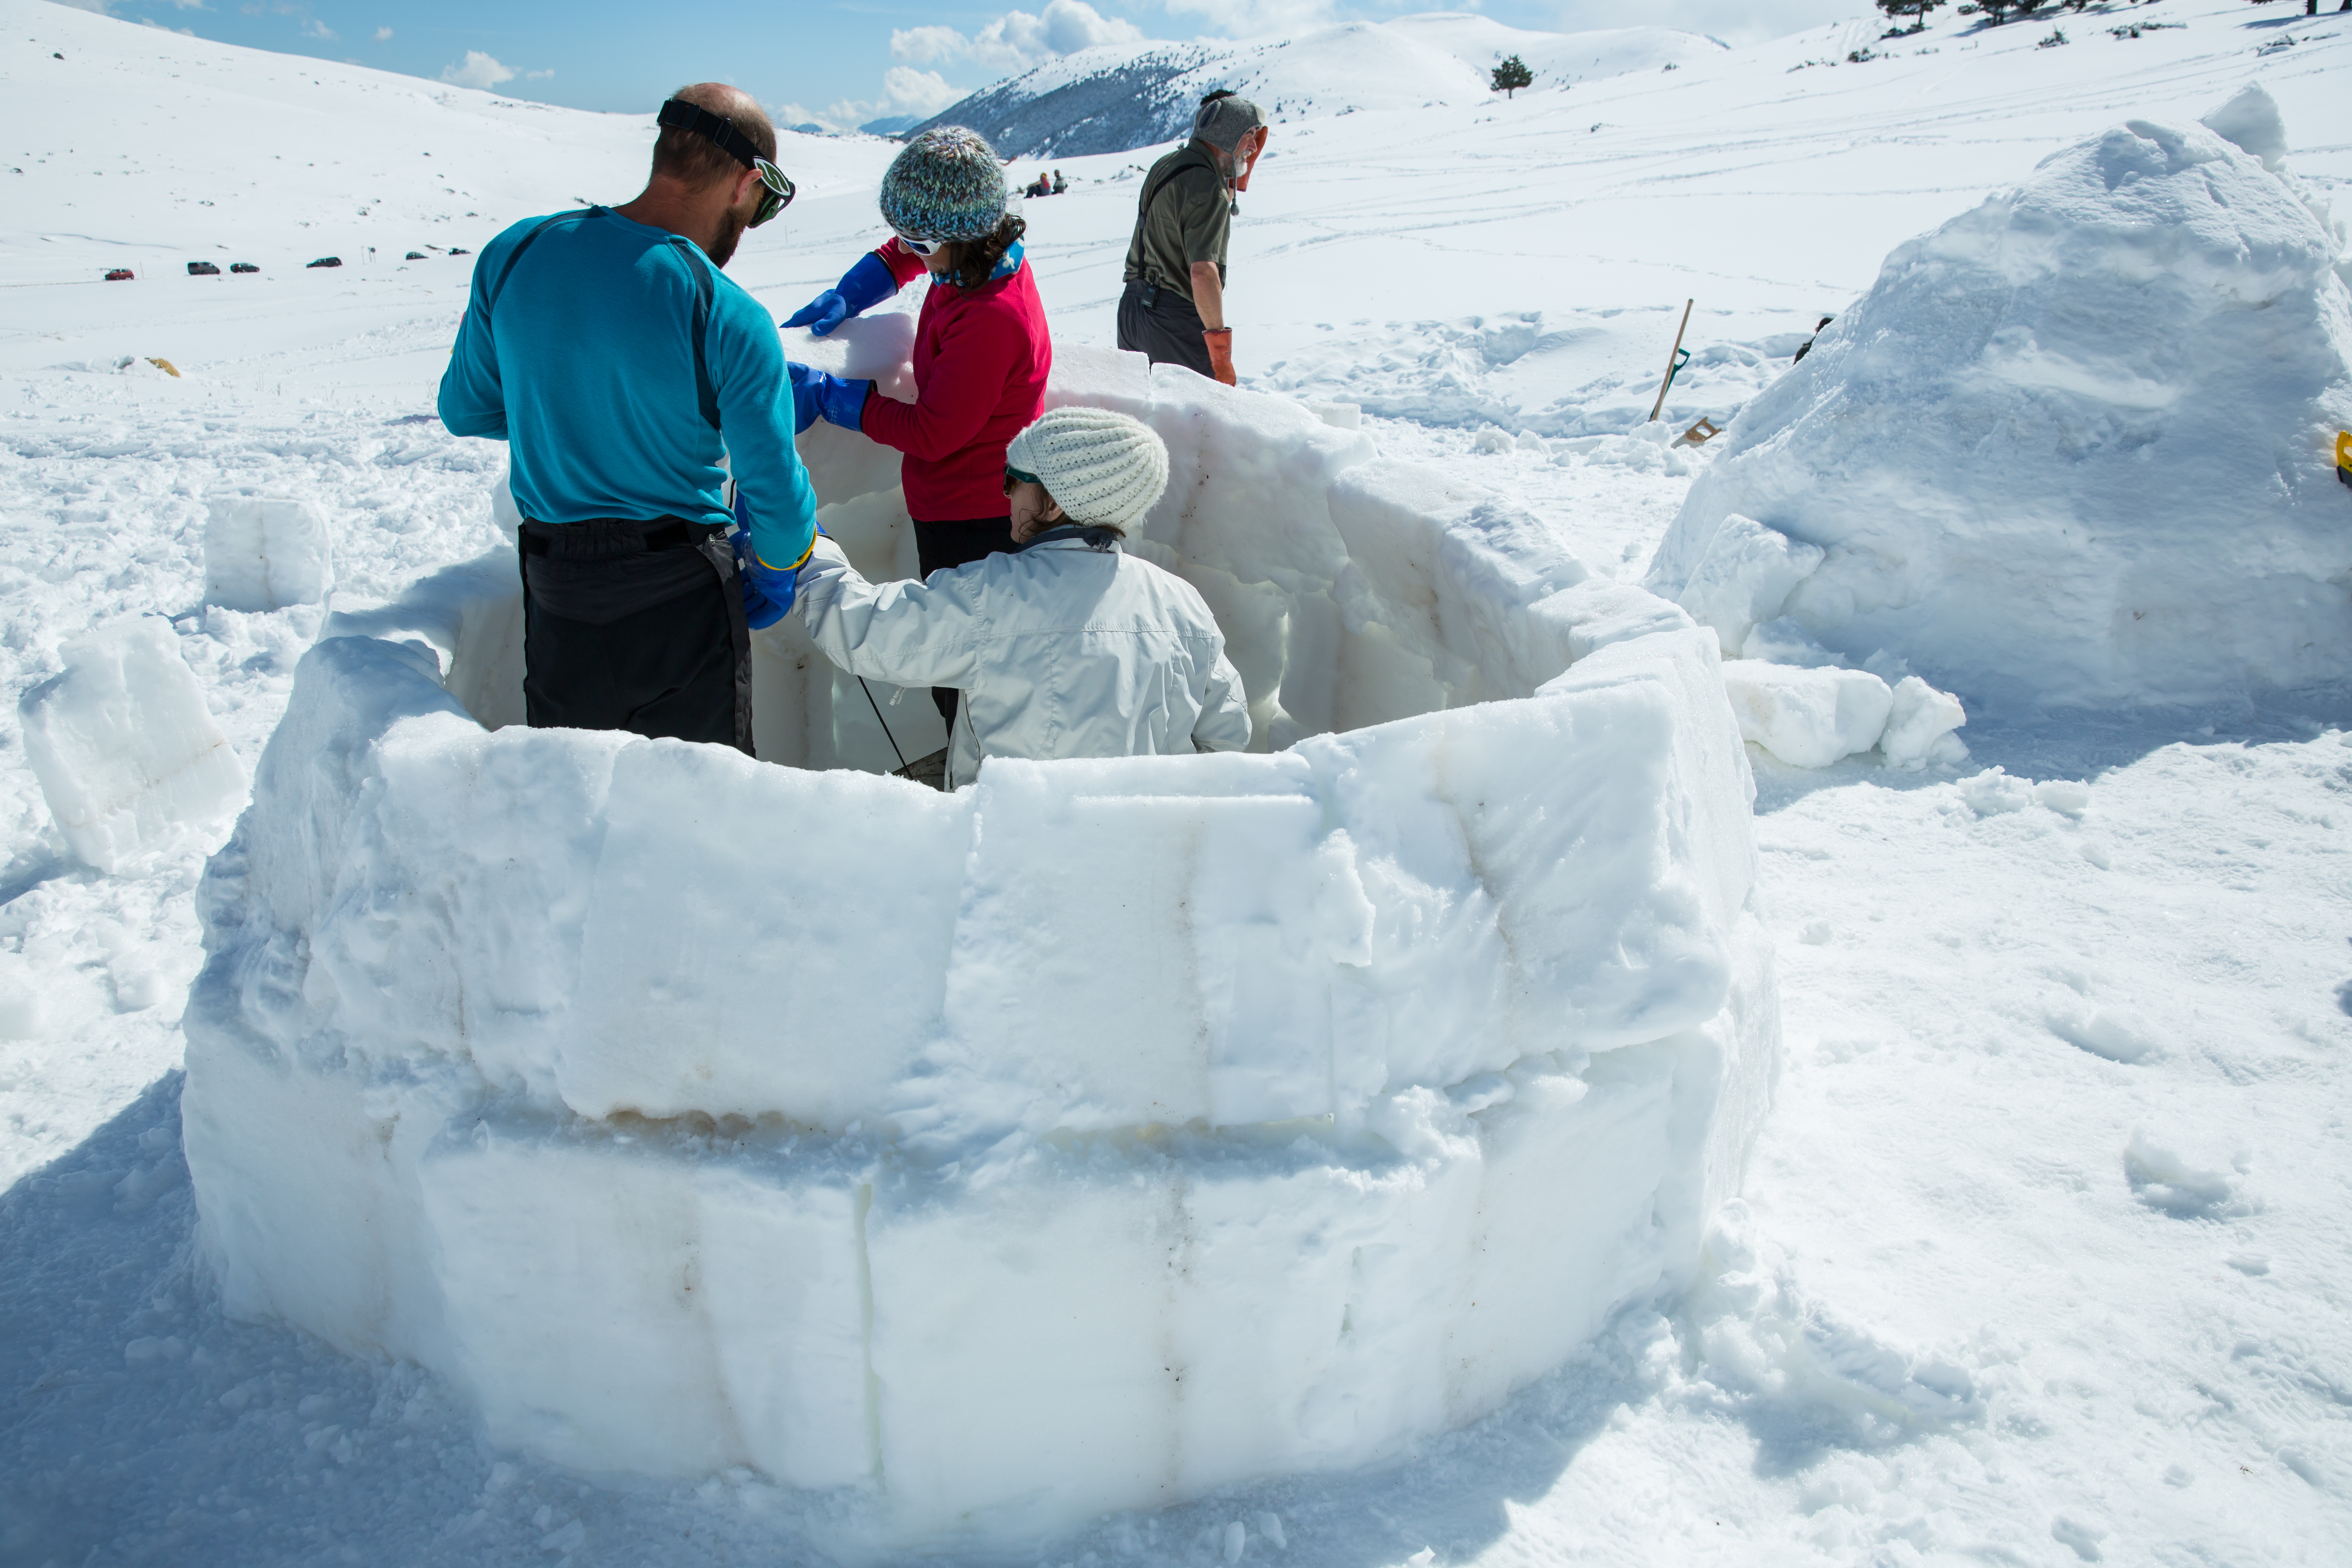 A nearly finished igloo in the Pla d'Anyella in La Molina.